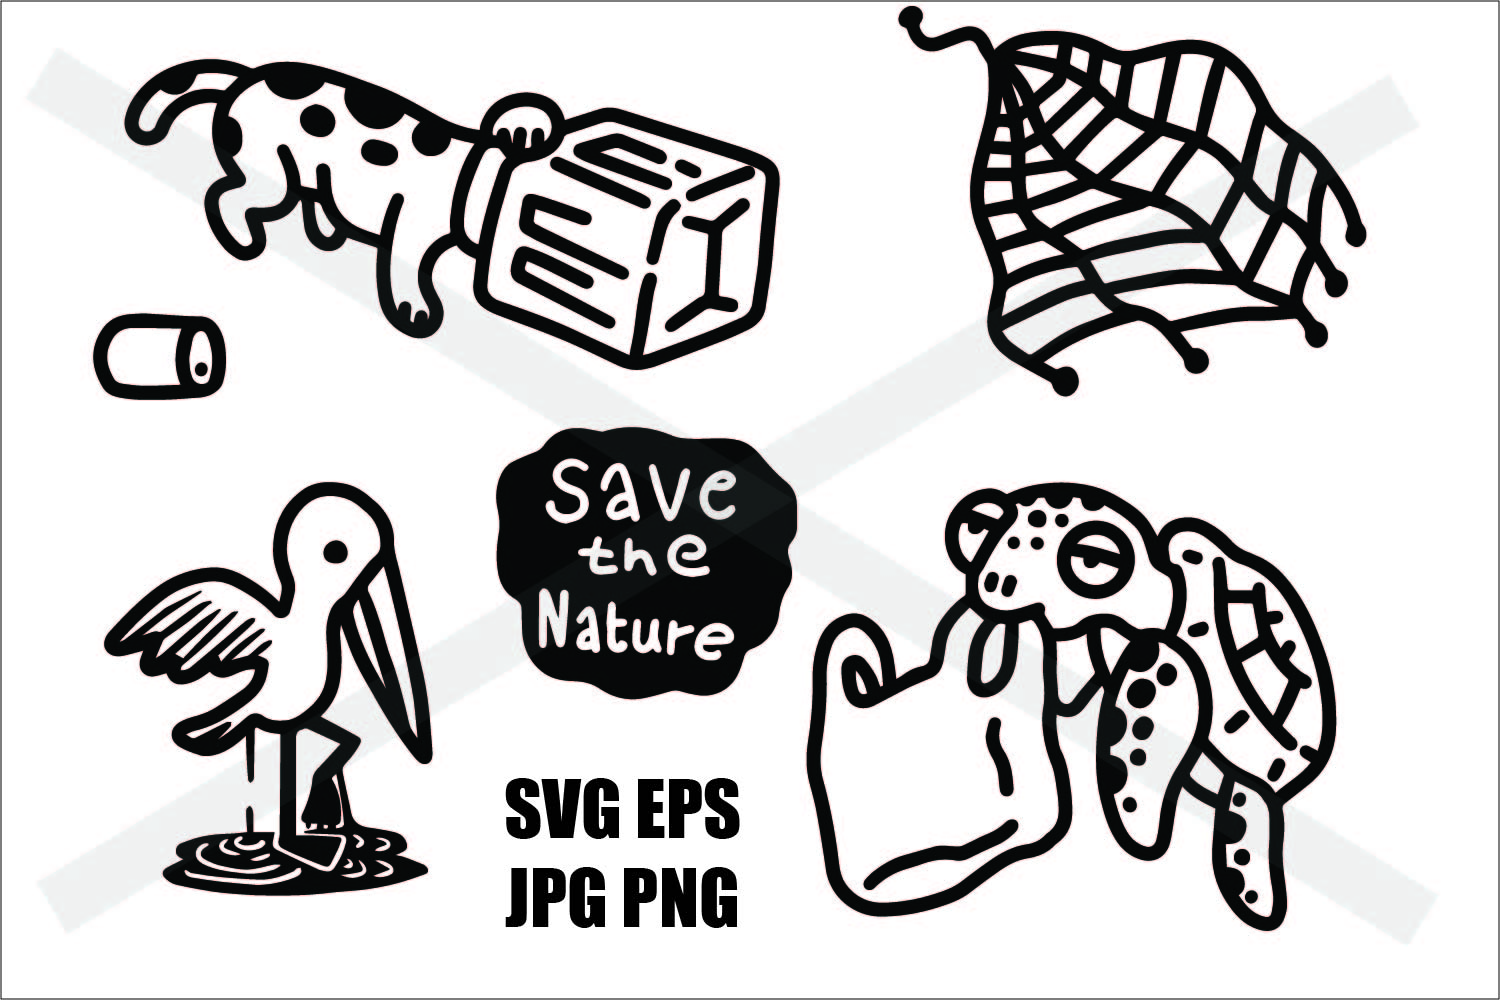 Save The Nature- Thin line and Thick Line - SVG/EPS/JPG/PNG example image 2